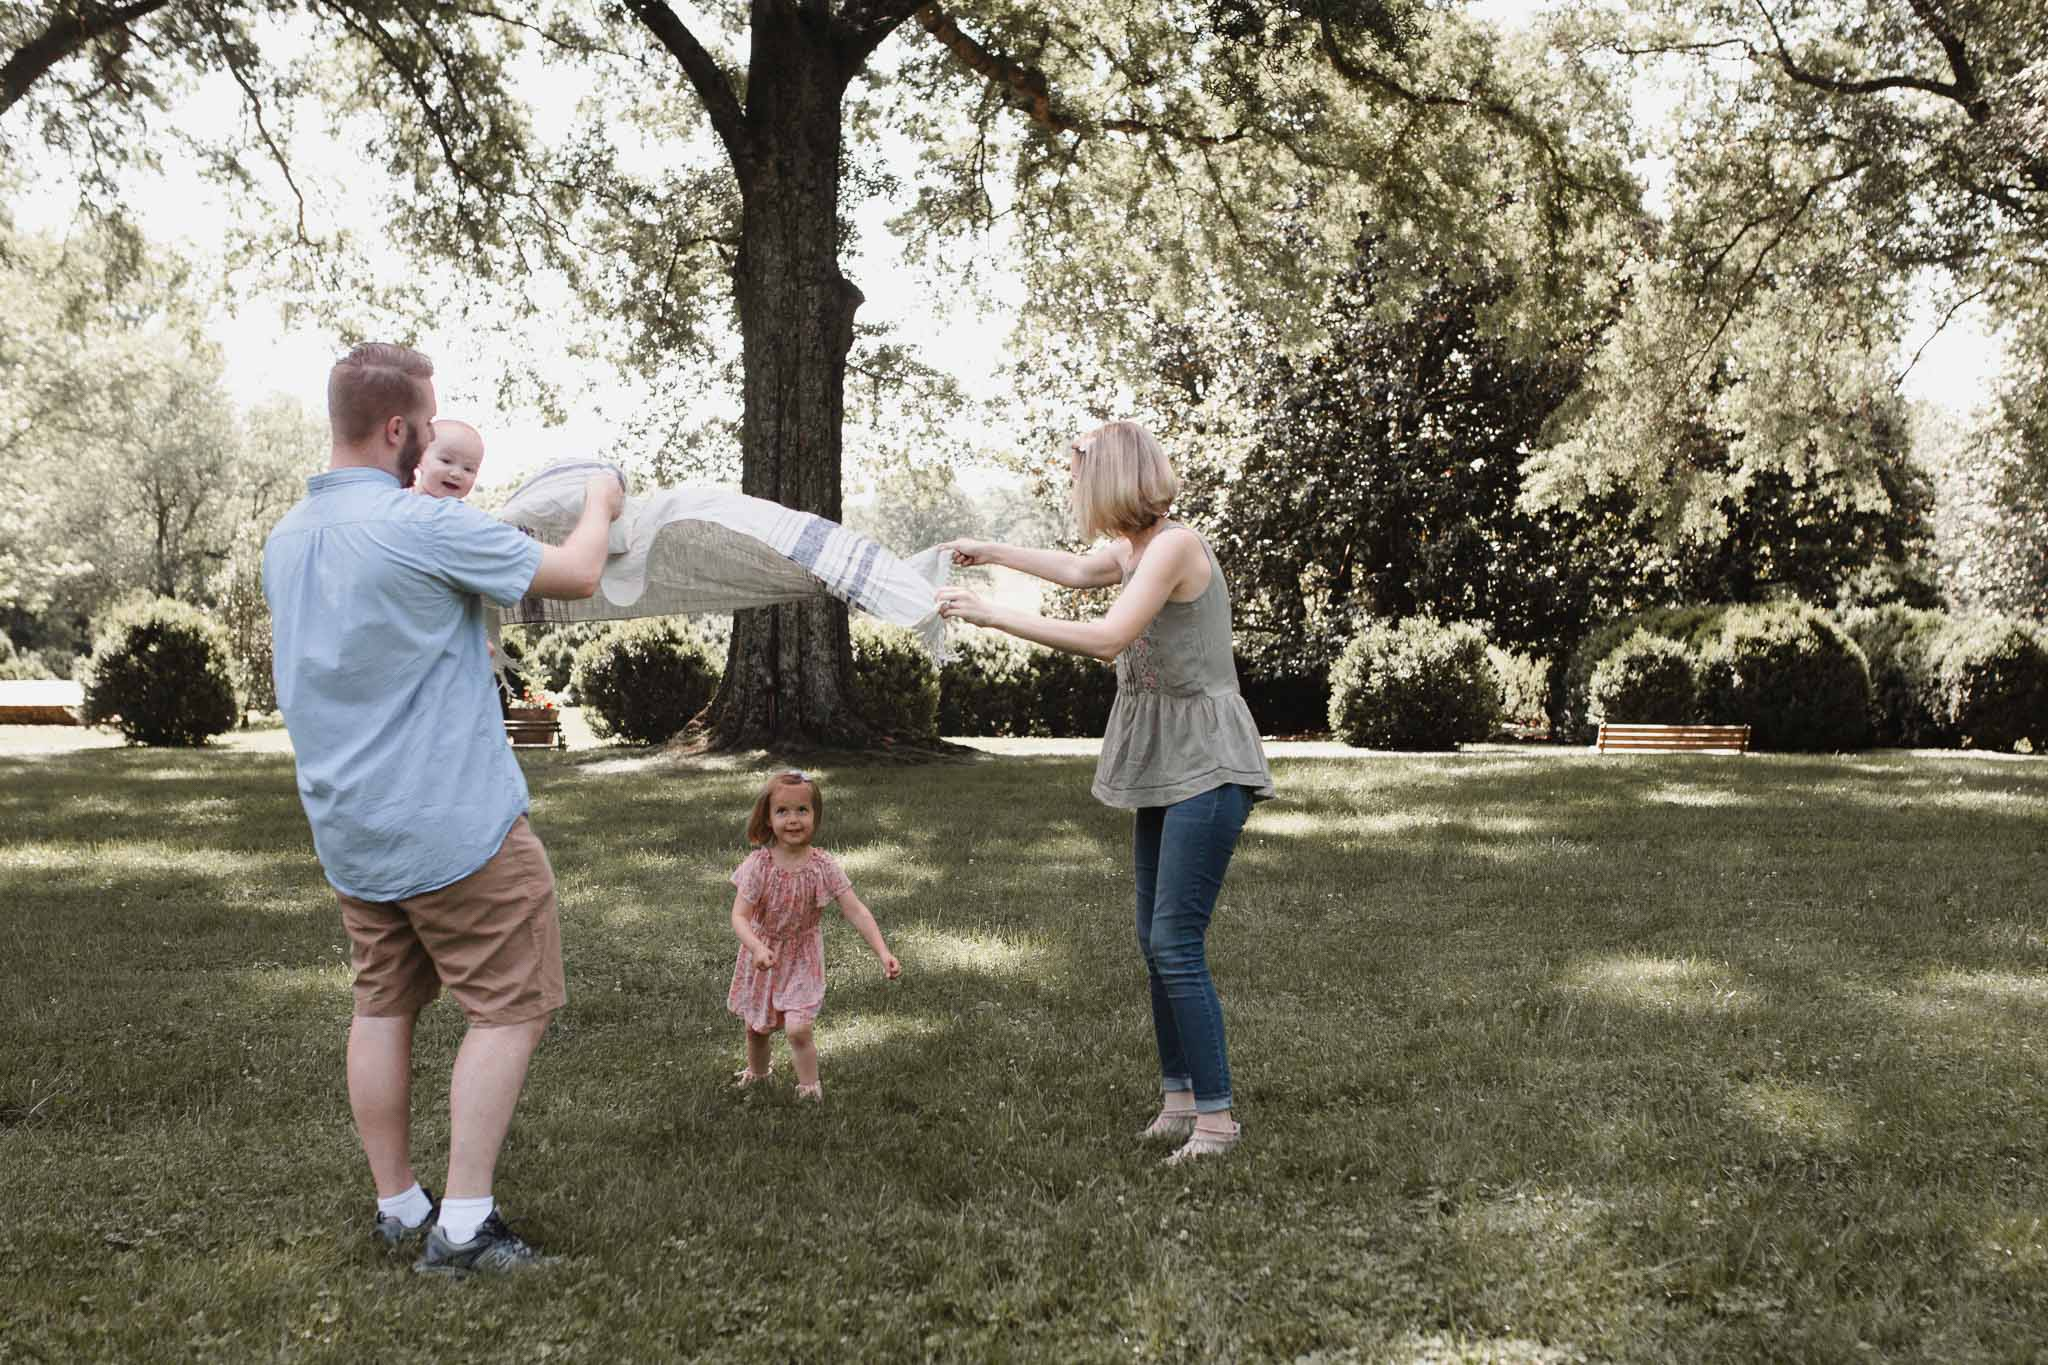 Parents hold out a blanket as their daughter runs under it at Morven Park in Leesburg, Virginia